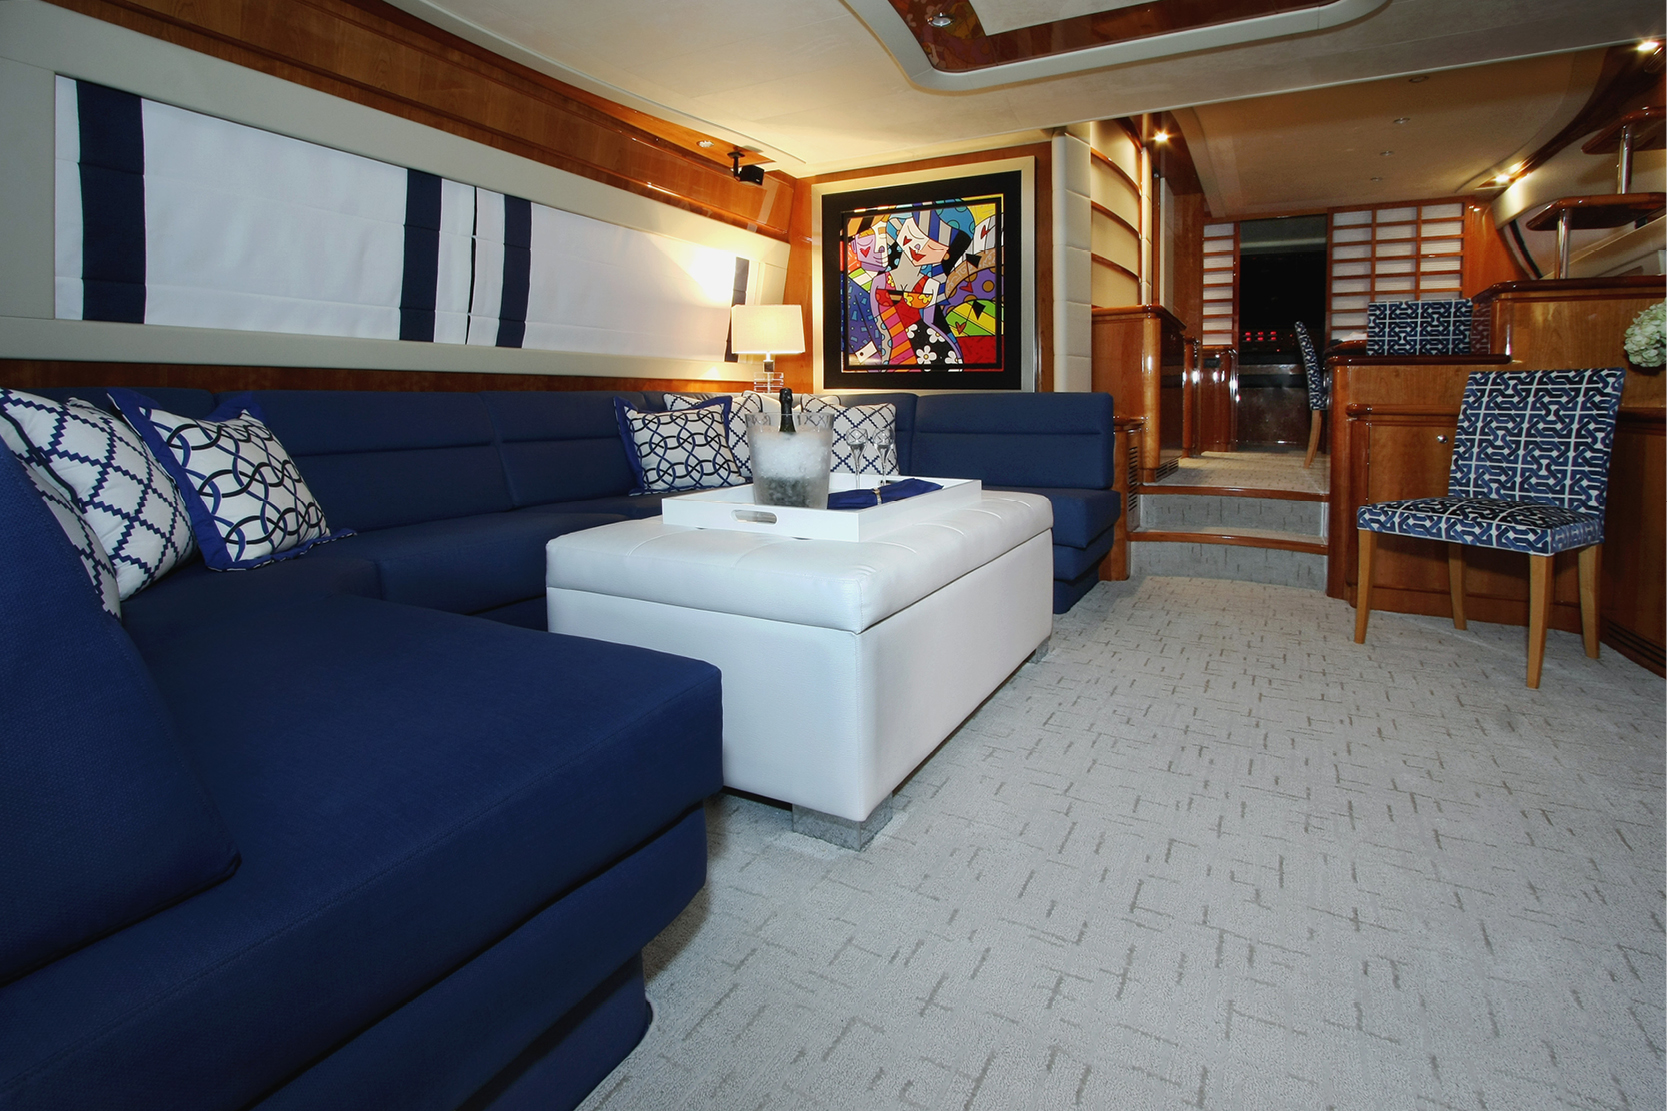 Interior-Design-76'-Ferretti-Motoryacht-Soux-Empress-Salon.jpeg